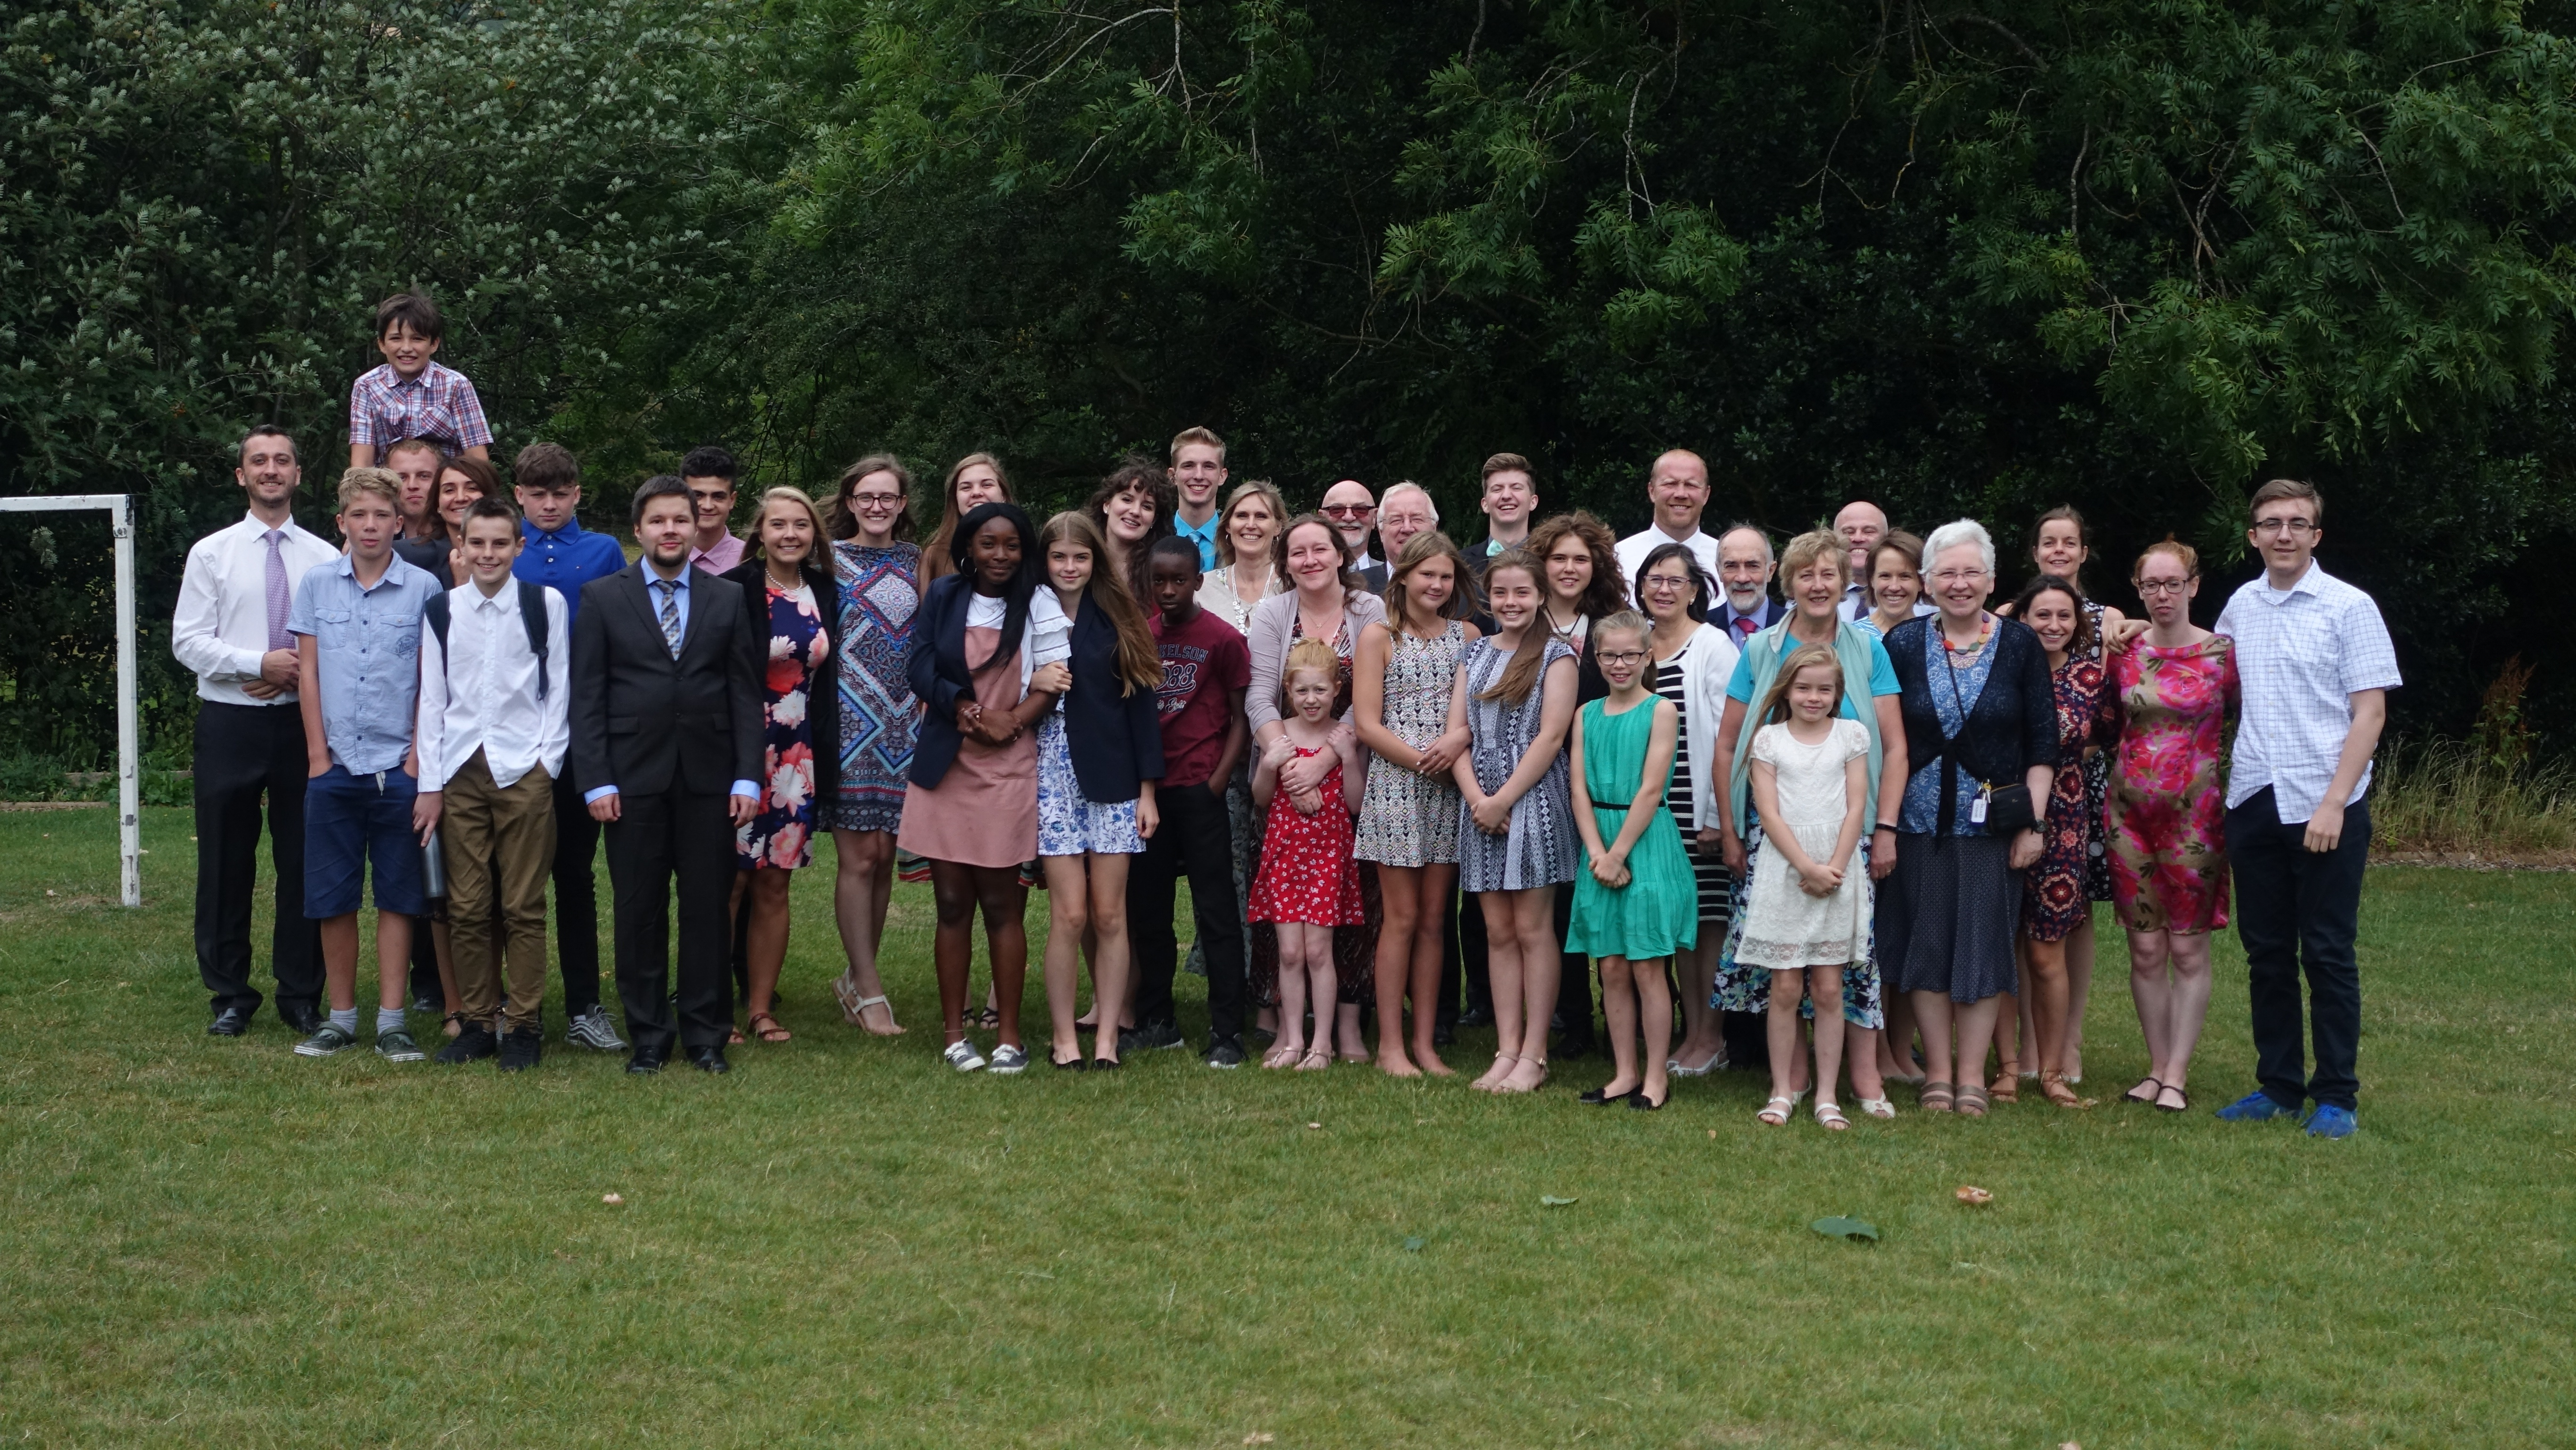 Campers and staff at British Isles Youth Camp.